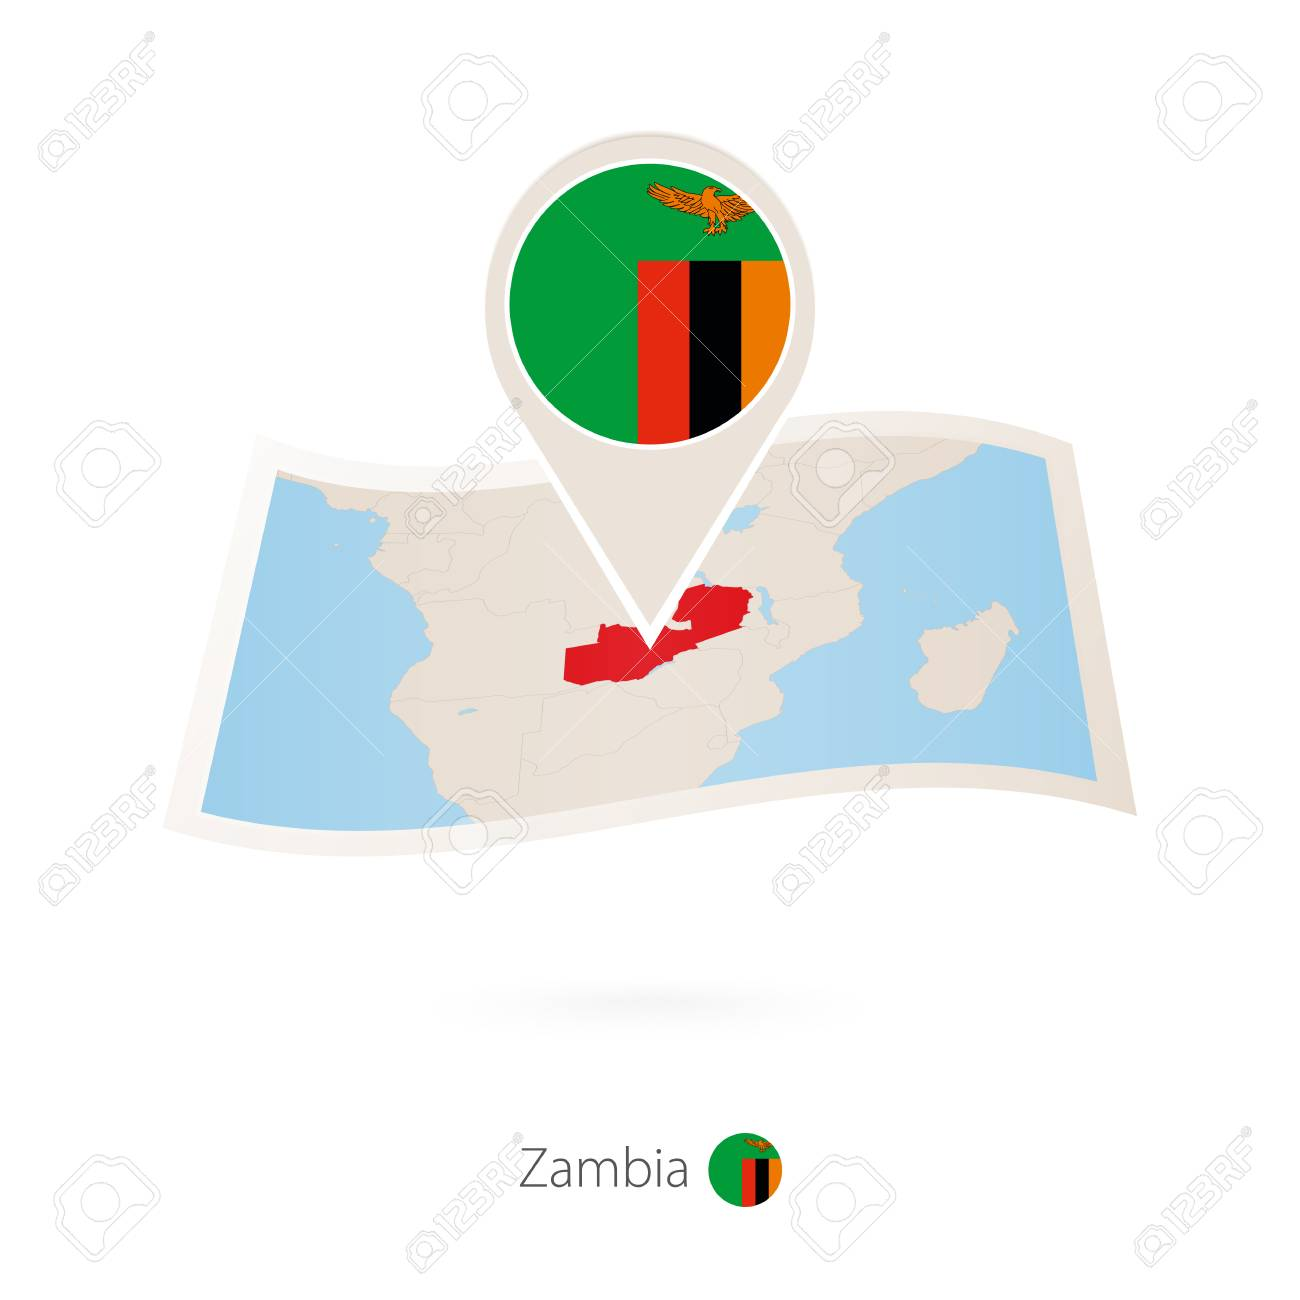 folded paper map of zambia with flag pin of zambia vector rh 123rf com Folded American Flag folded flag vector